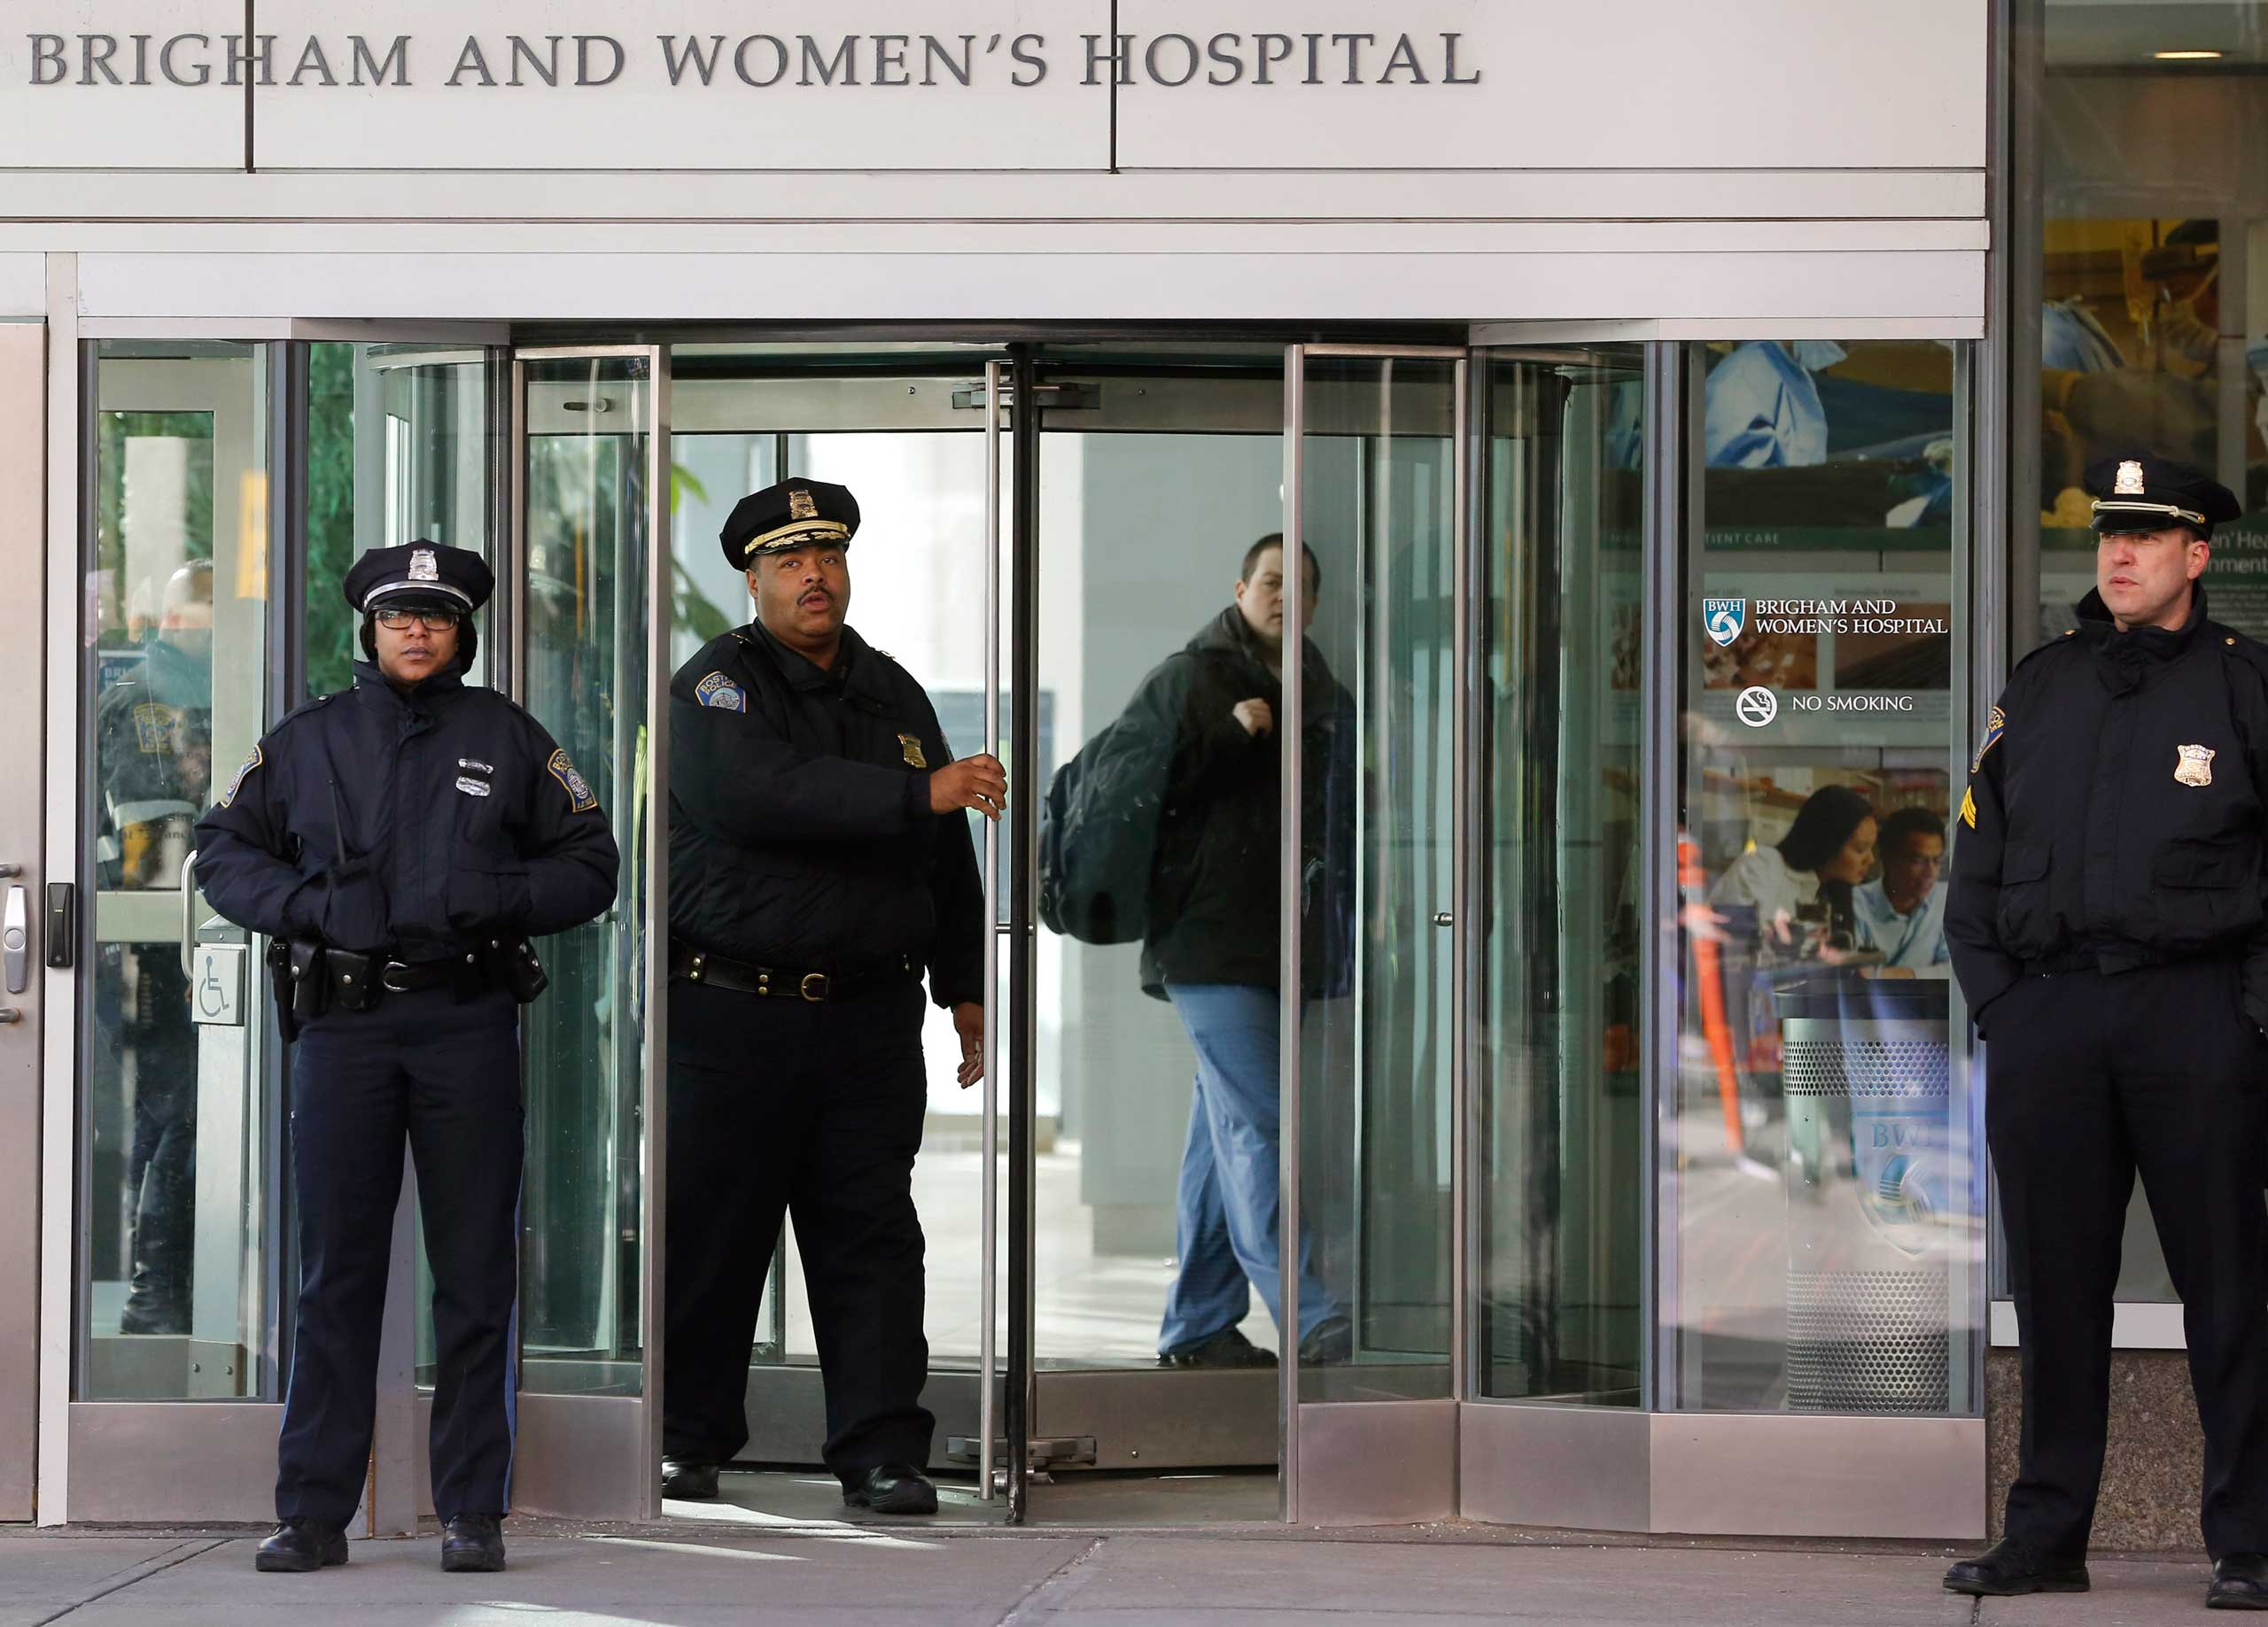 Boston Police Superintendent-in-Chief William Gross, center left, walks through a revolving door as he departs the Shapiro building at Brigham and Women's Hospital, Jan. 20, 2015 in Boston.